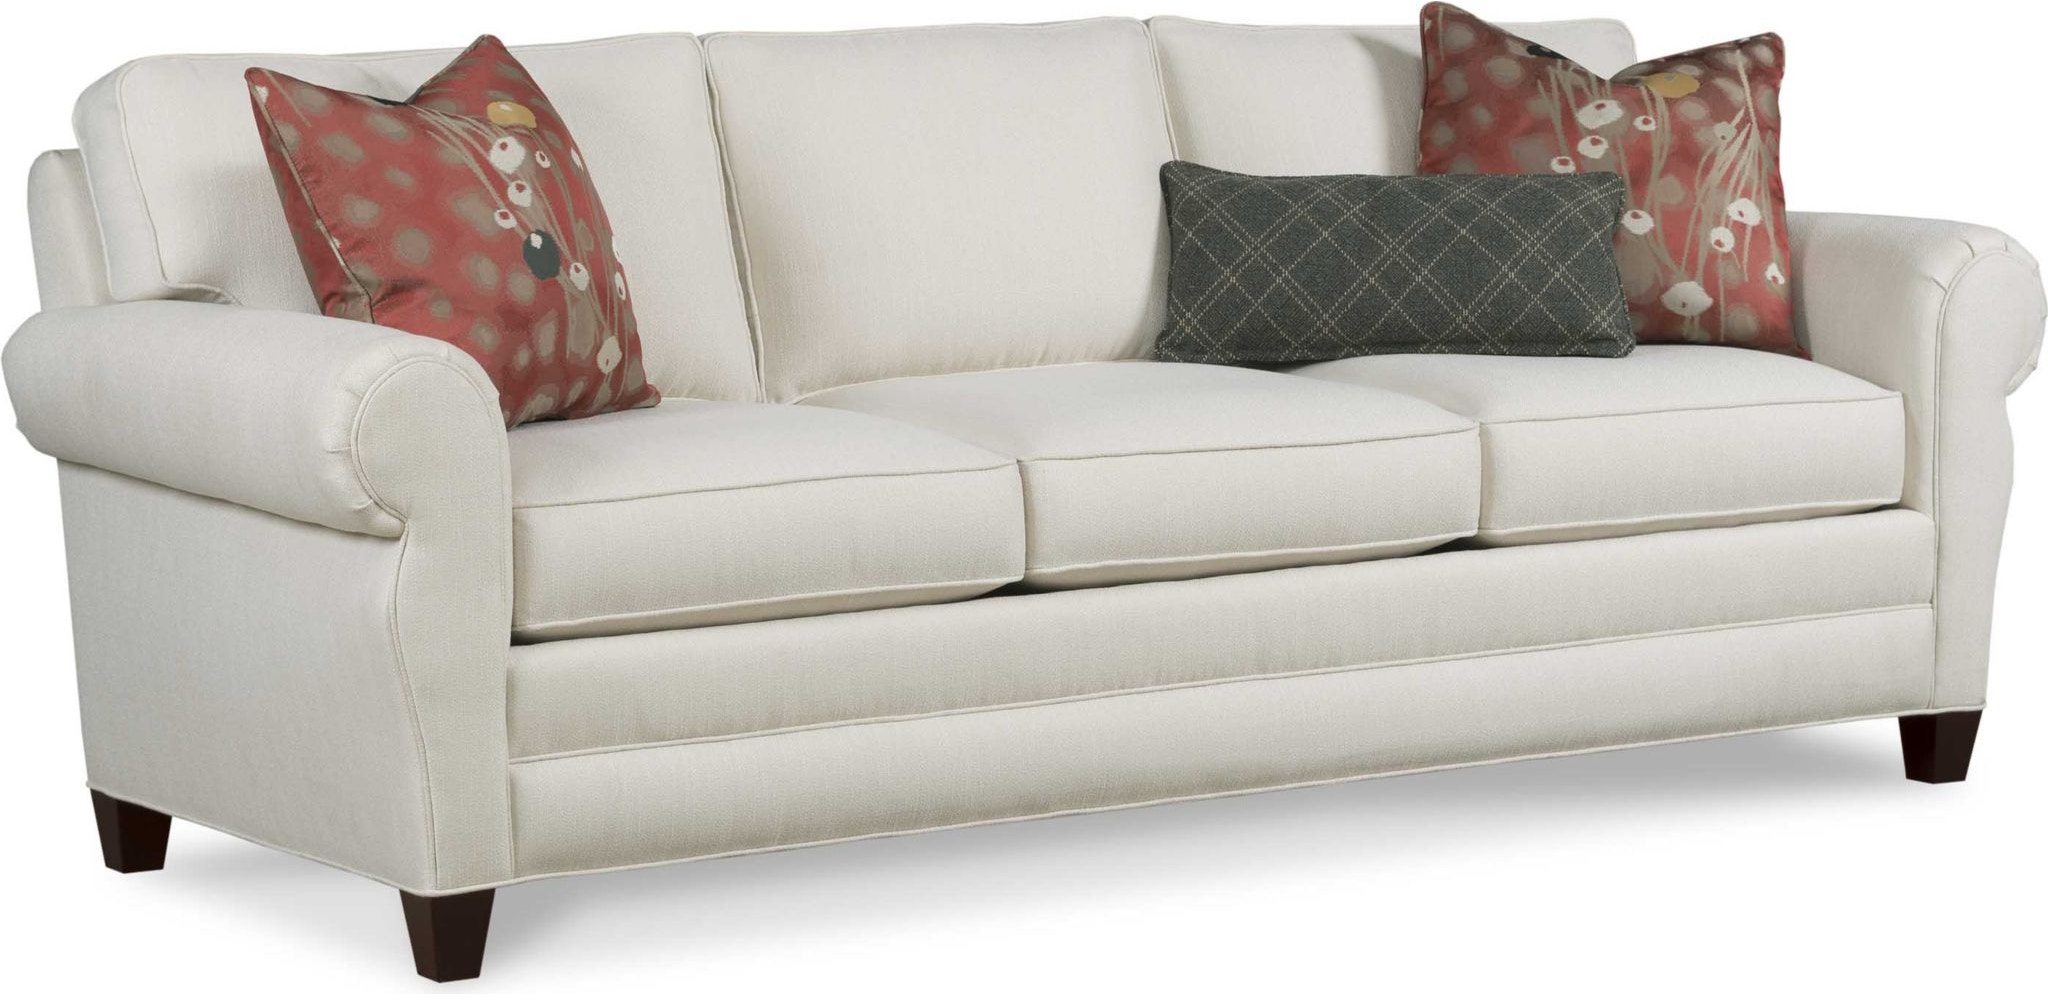 Thomasville Living Room Gwyneth Sofa Impressions T104 11